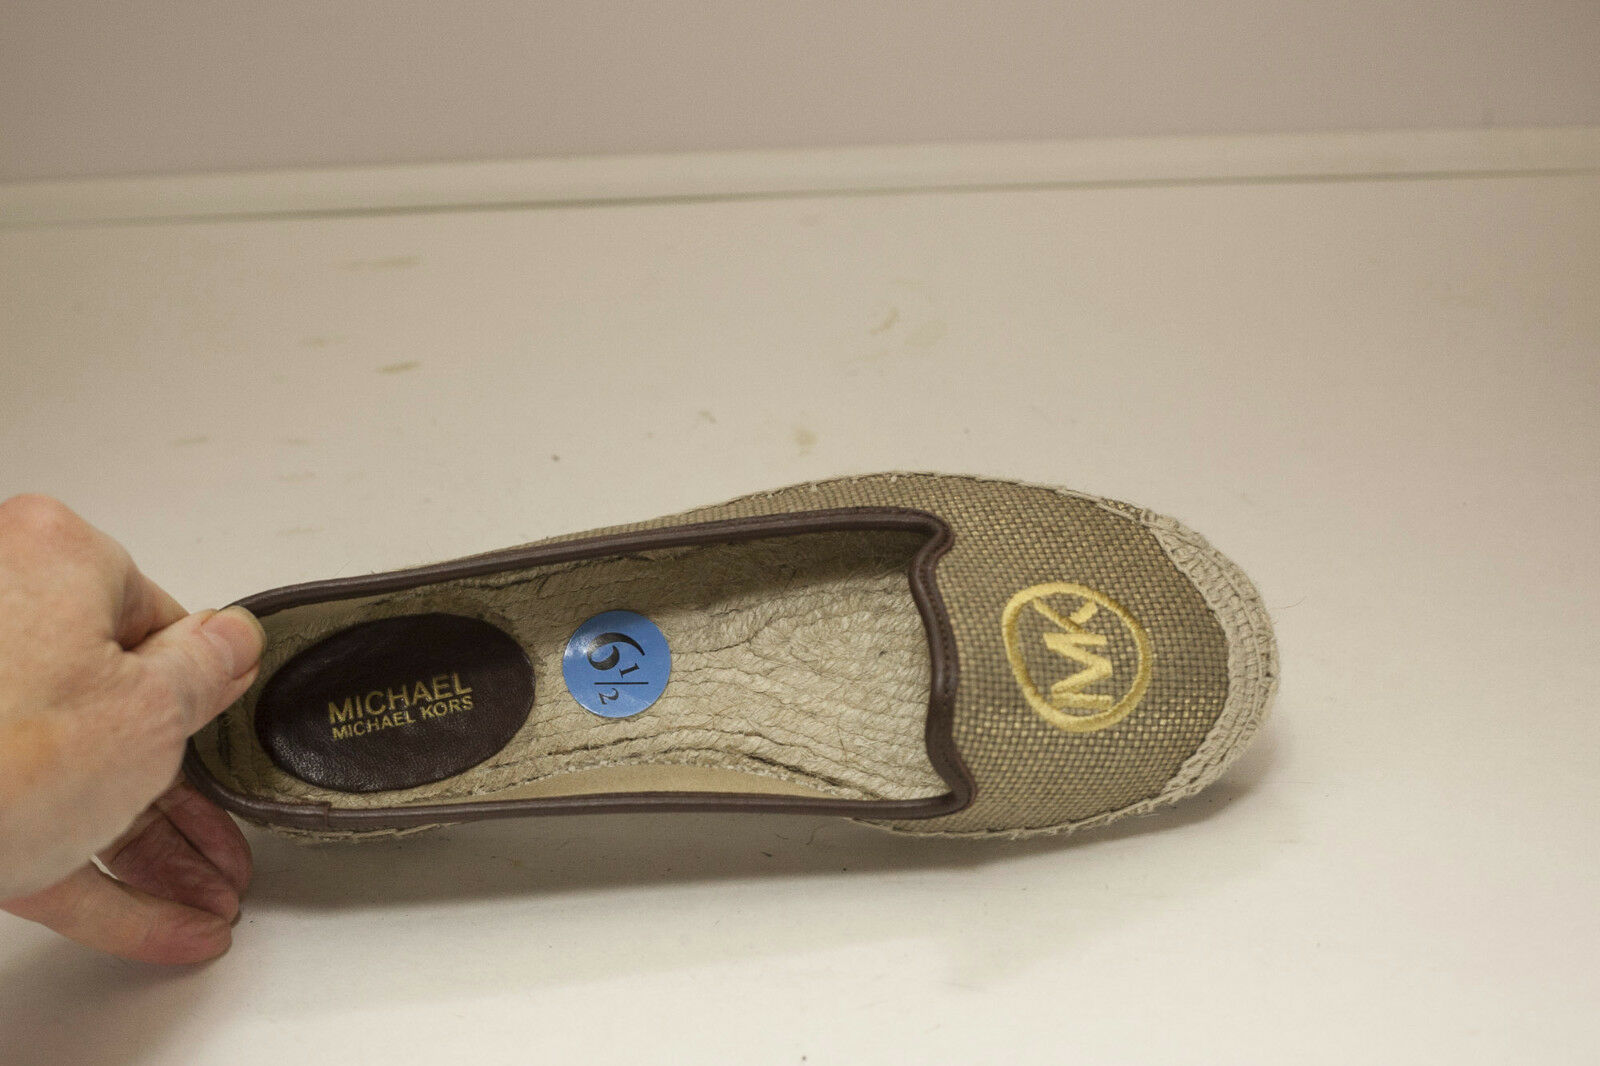 Michael Kors US 6.5 Gold Brown Espadrilles Flats Women's